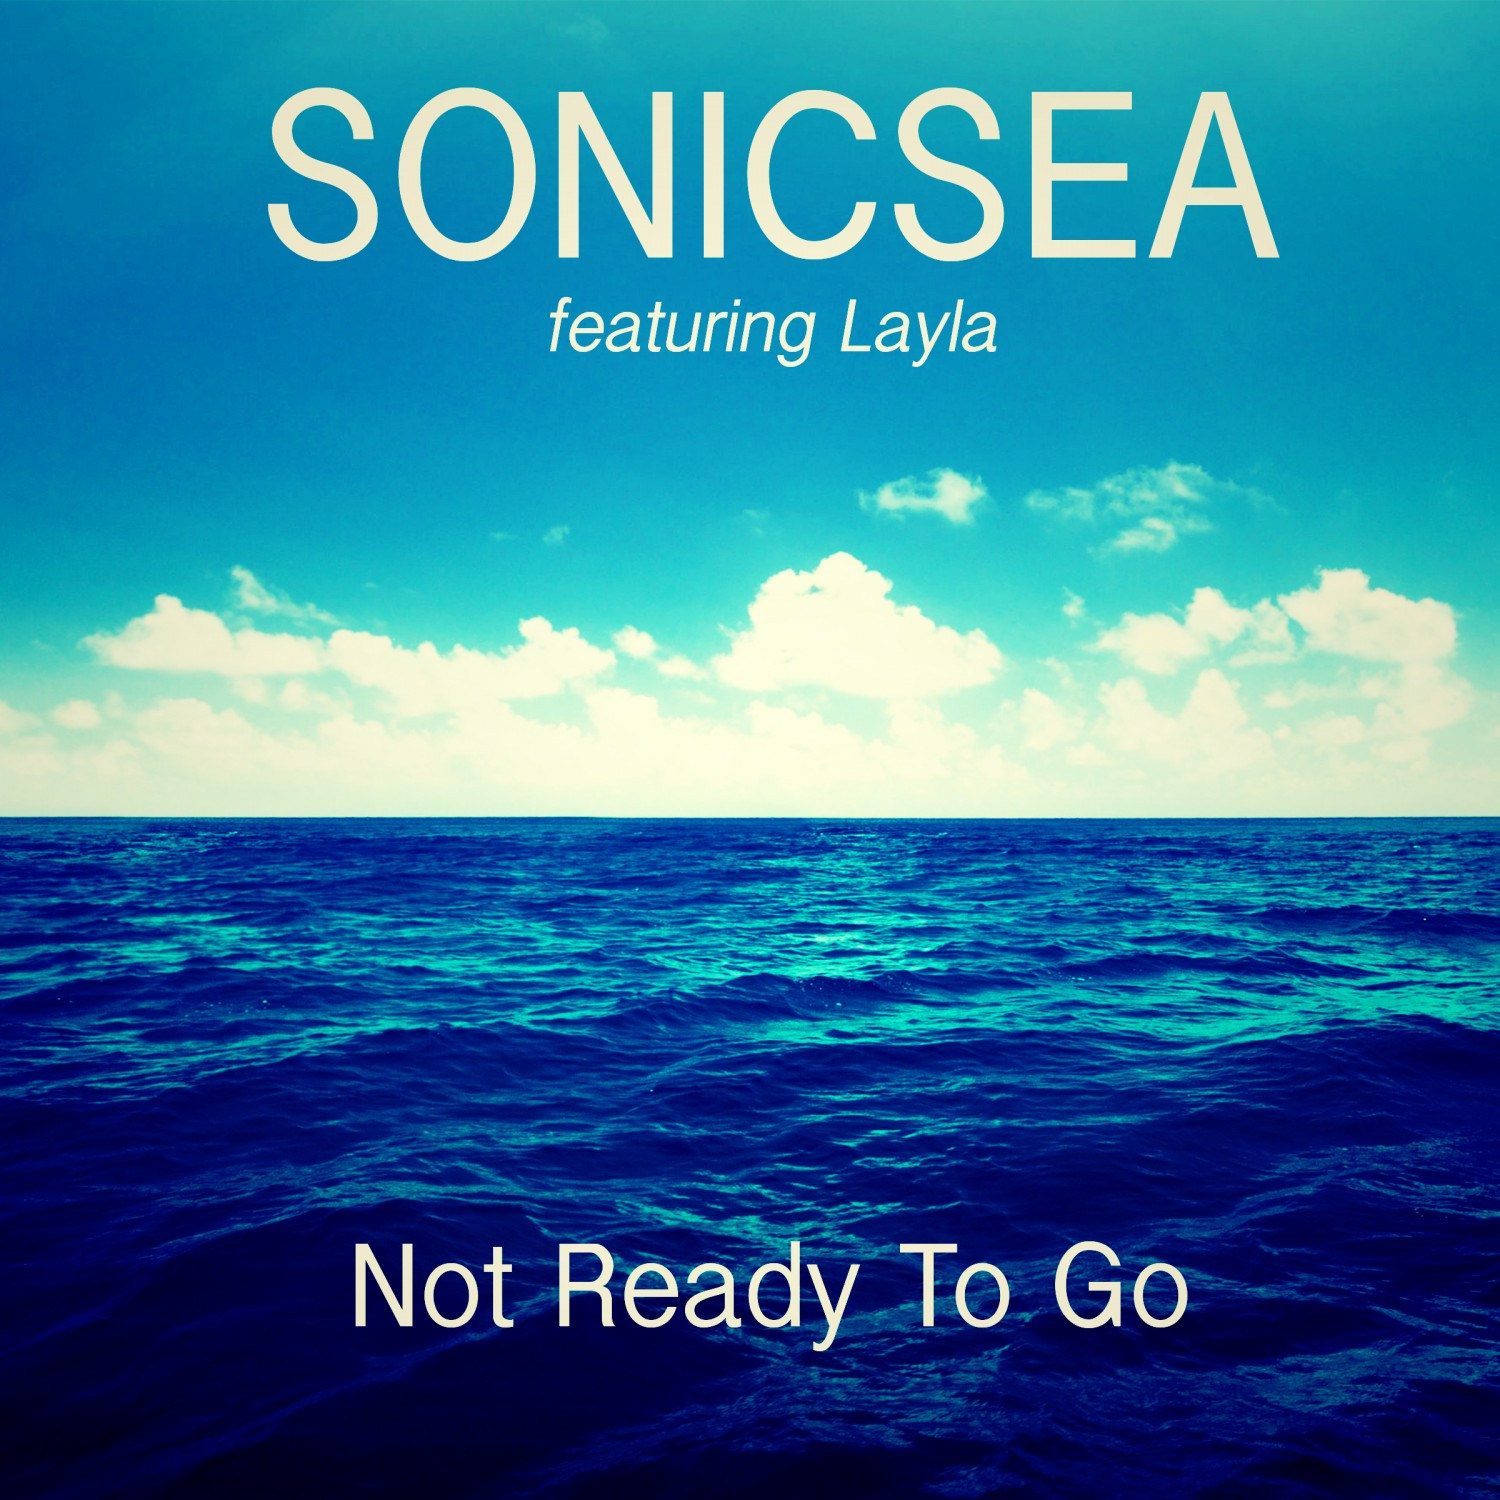 Sonicsea - Not Ready To Go (feat. Layla)